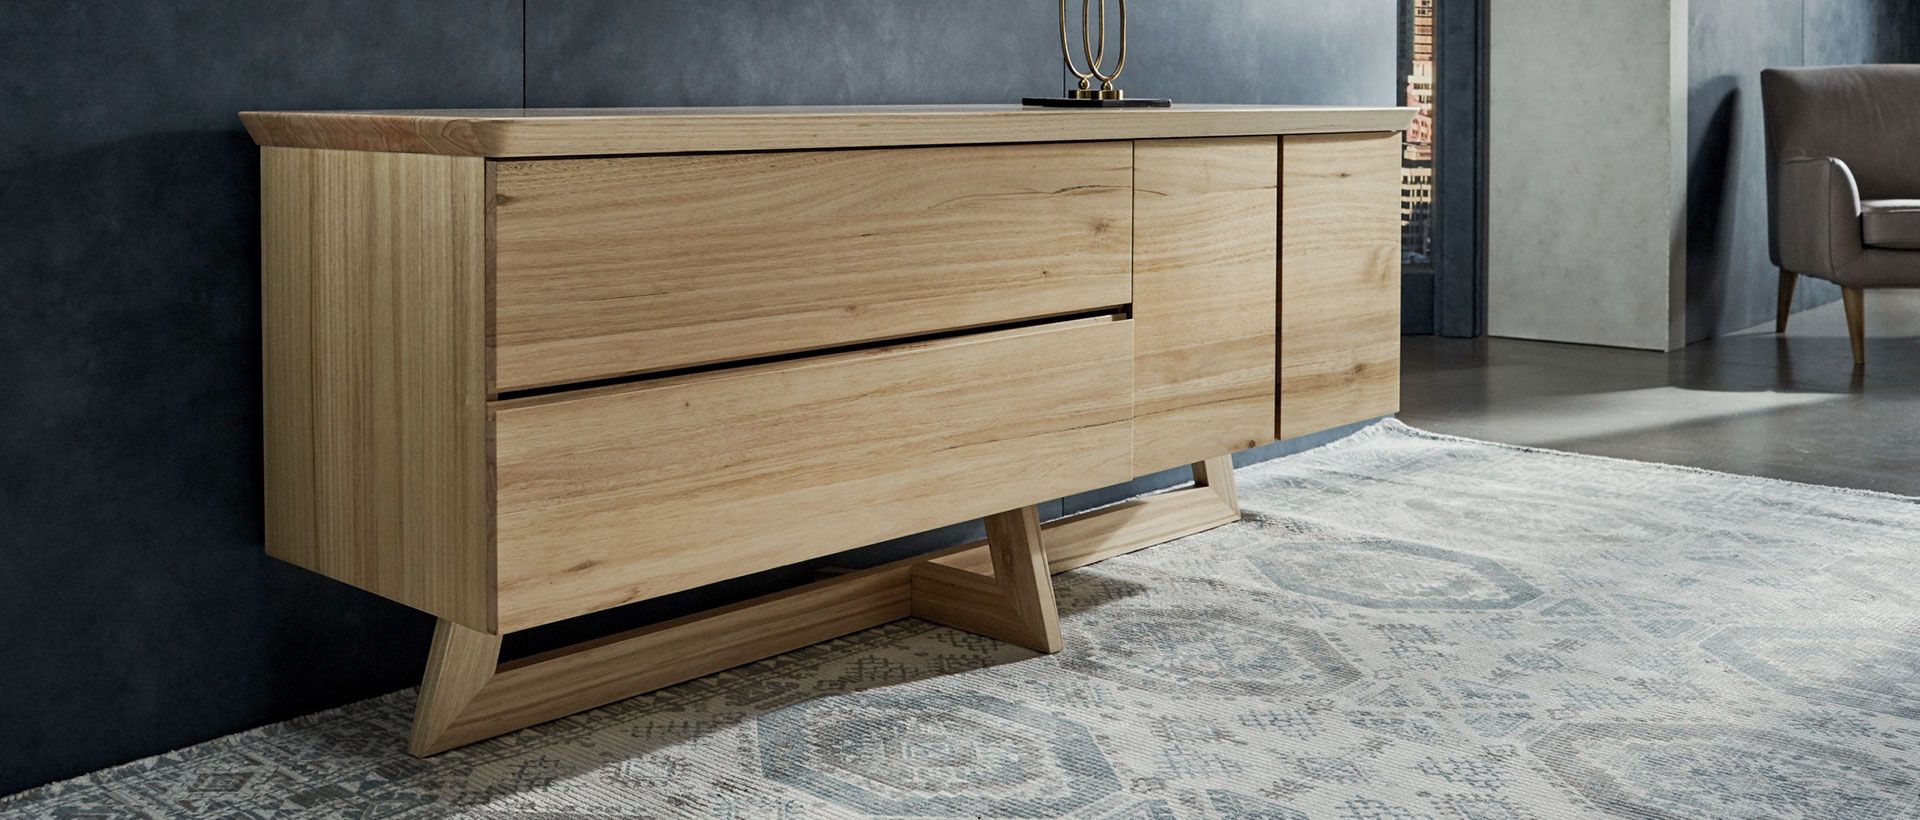 Buffets, Cabinets & Sideboards | Nick Scali within Industrial Concrete-Like Buffets (Image 8 of 30)